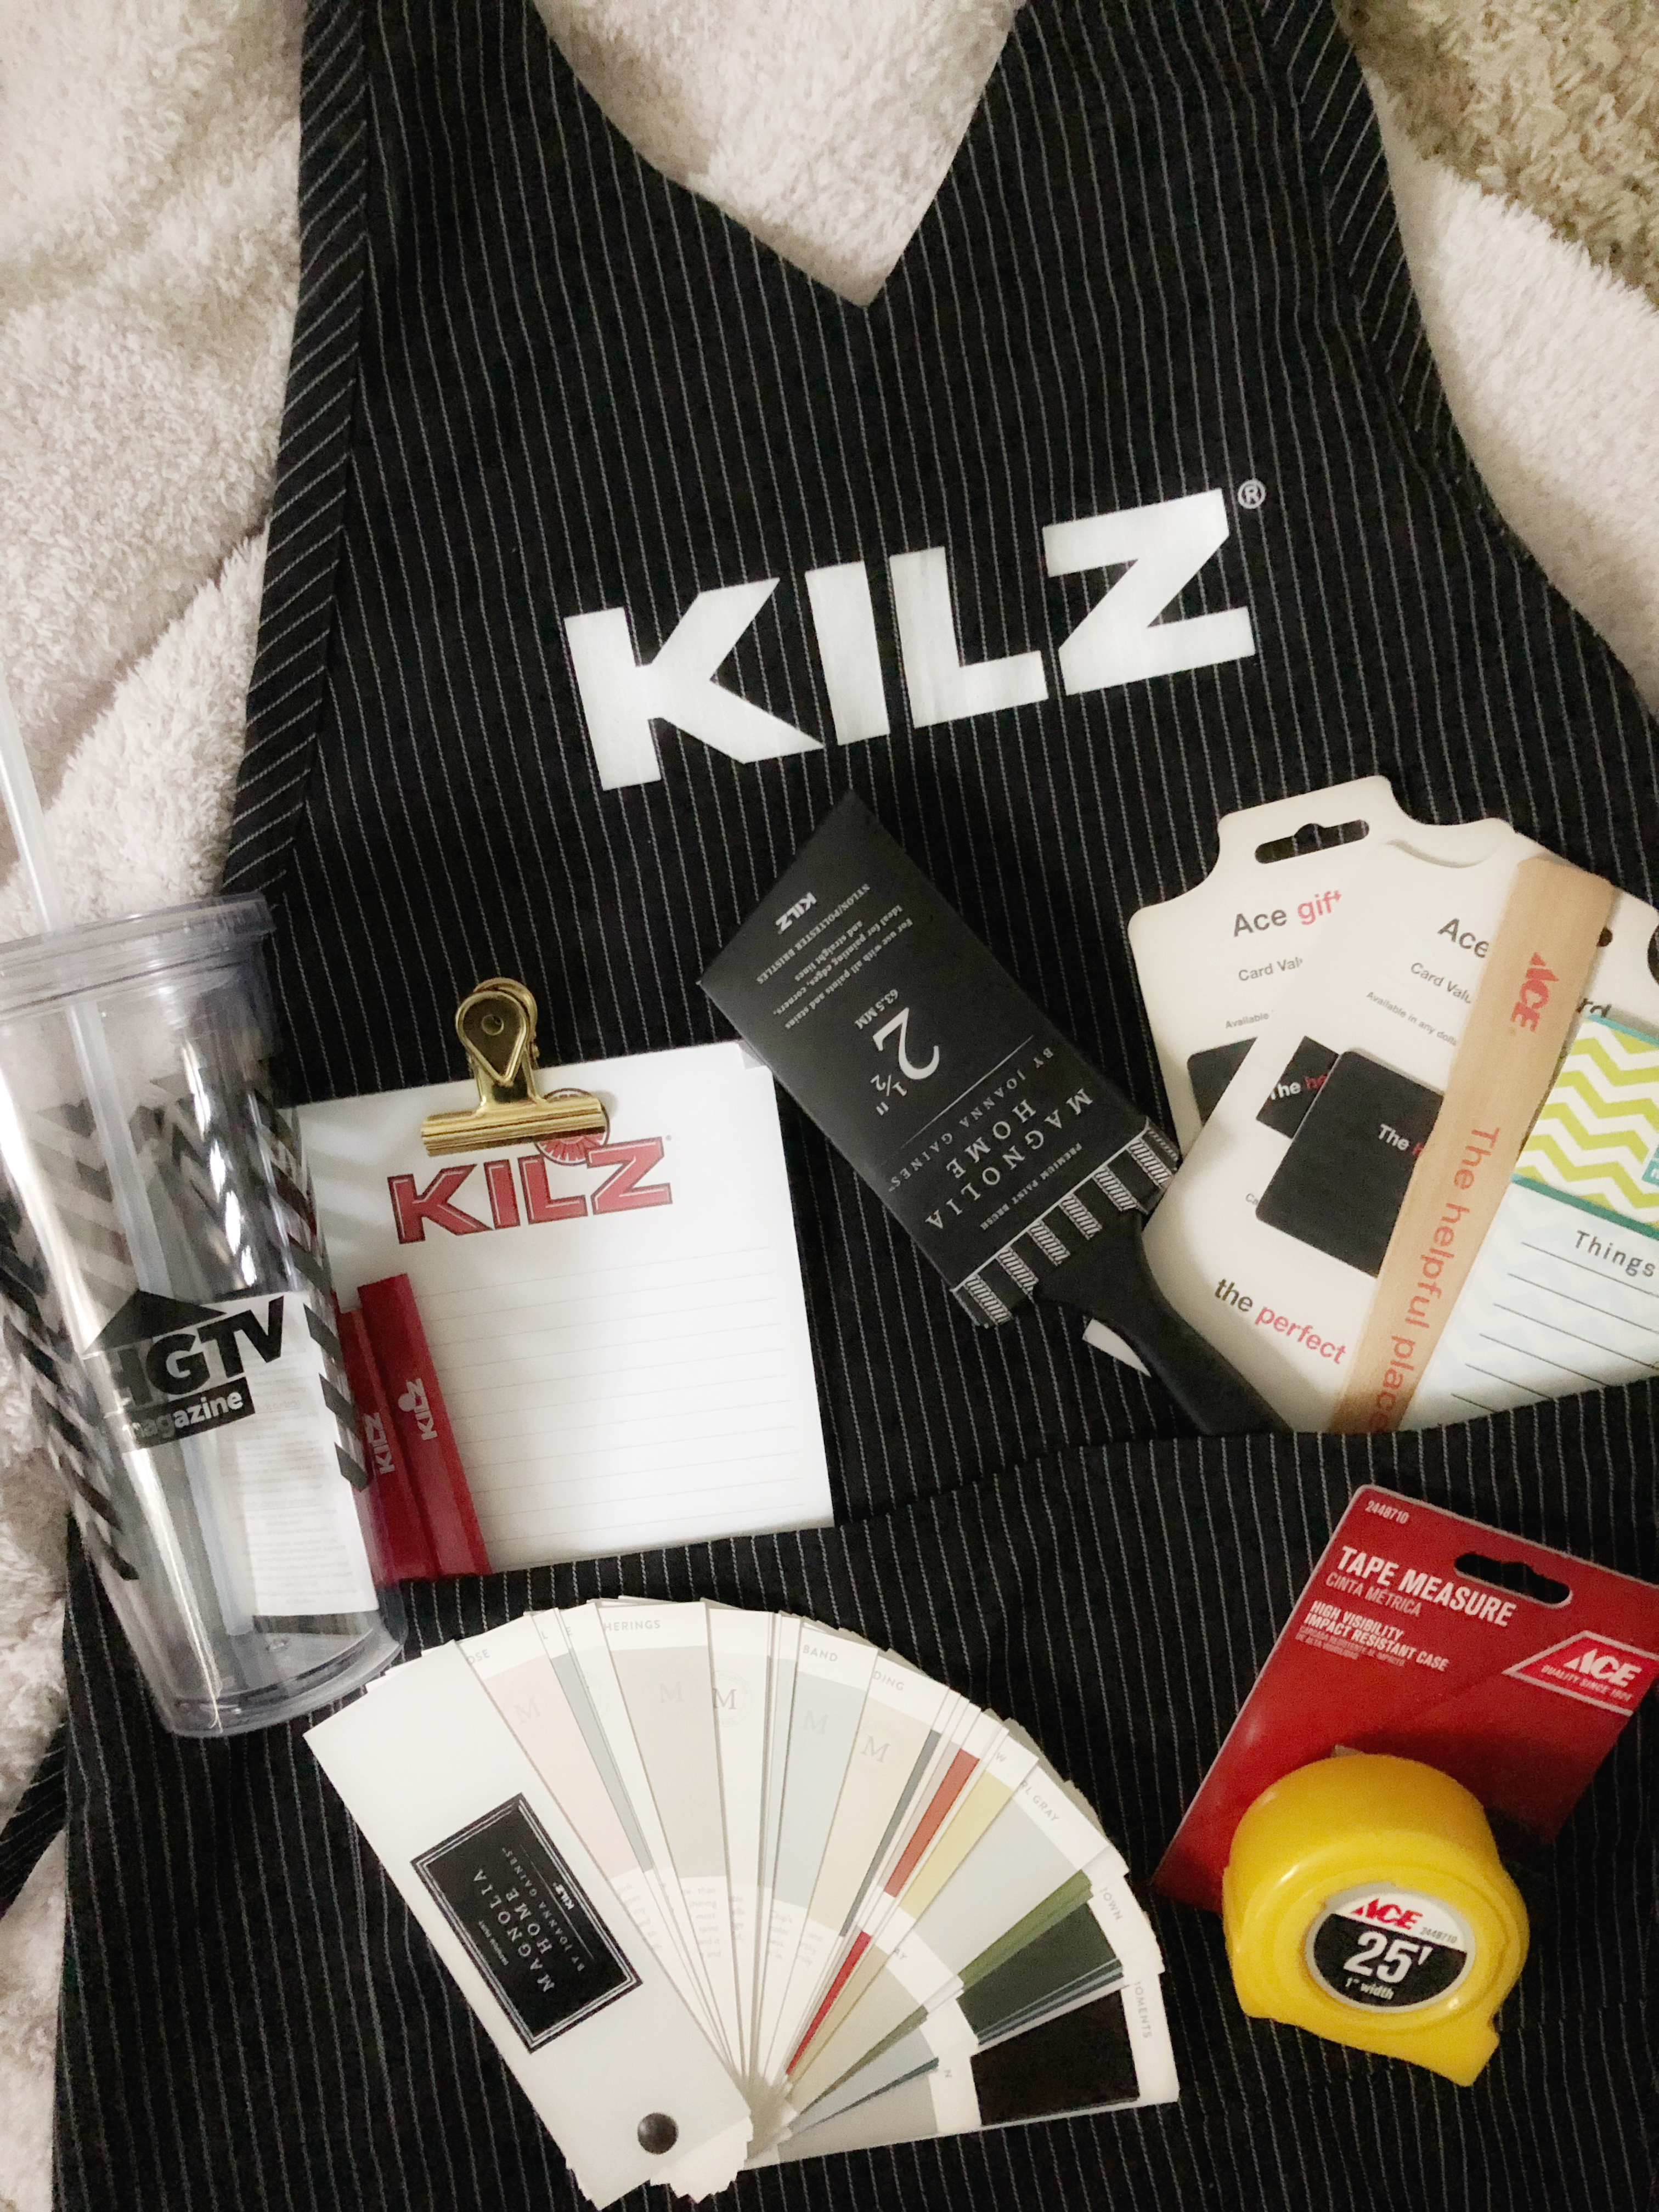 a look inside the swag bag - #kilzbrand